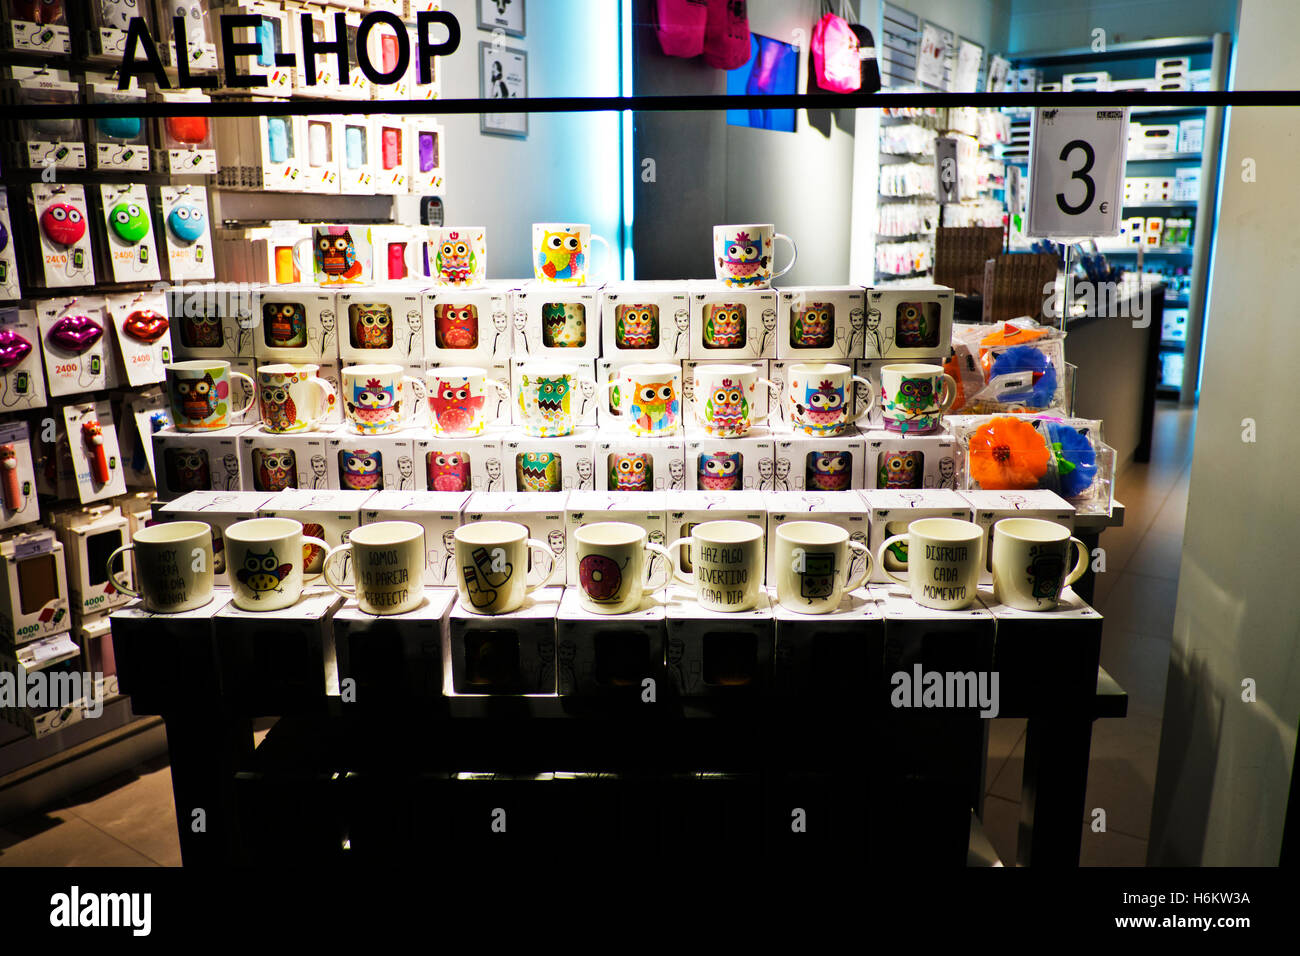 Shop window in Barcelona displaying and selling mugs for tourists, Spain - Stock Image